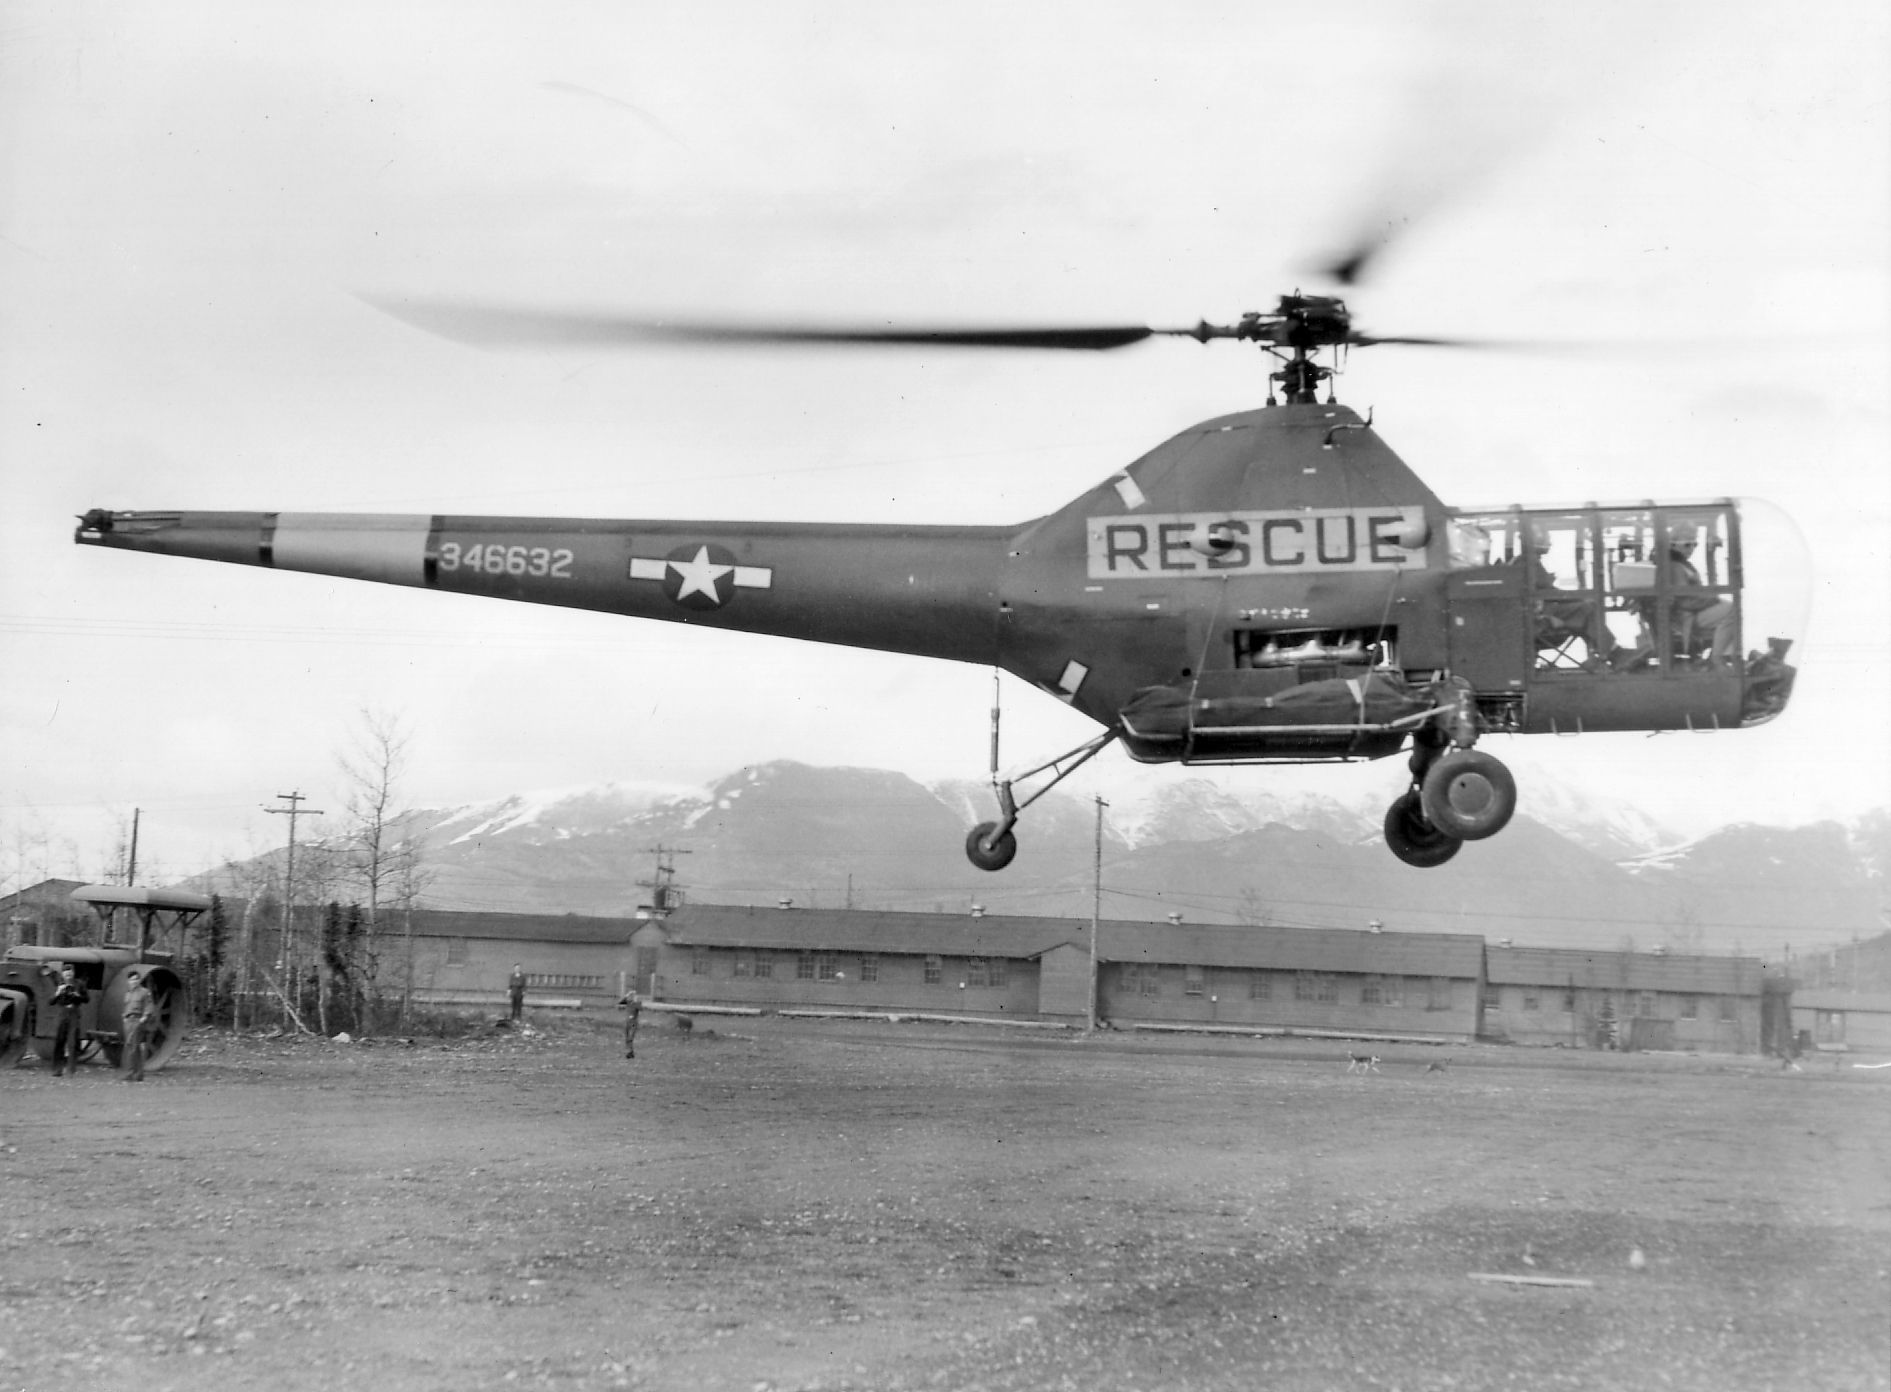 Sikorsky S-51 / H-5 Dragonfly - 17 May 1947, 10th Rescue Squadron helicopter -183rd General Hospital Fort Richardson, Alaska